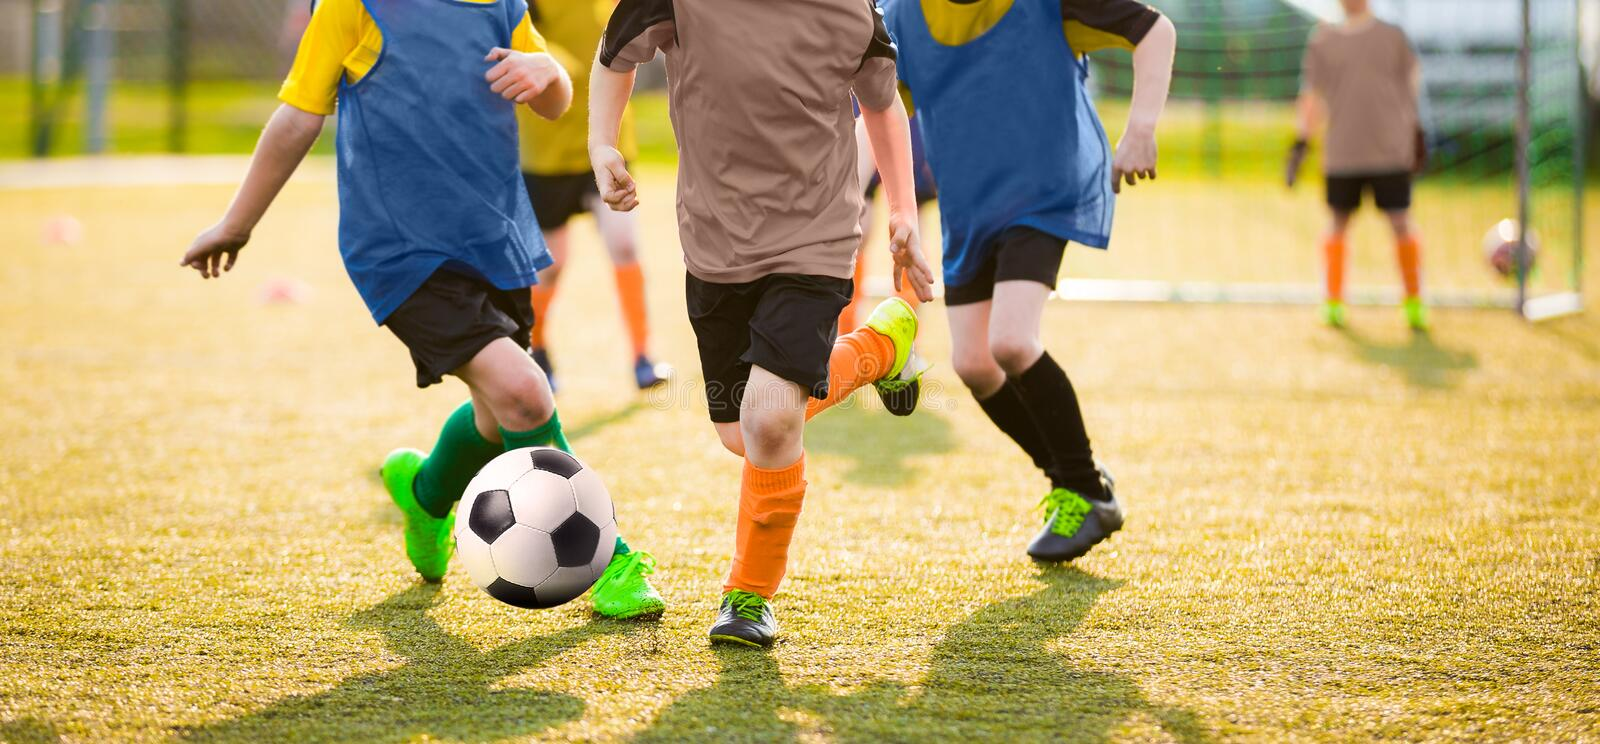 Kids Playing Soccer Game Tournament. Football Soccer Match for Kids royalty free stock photos